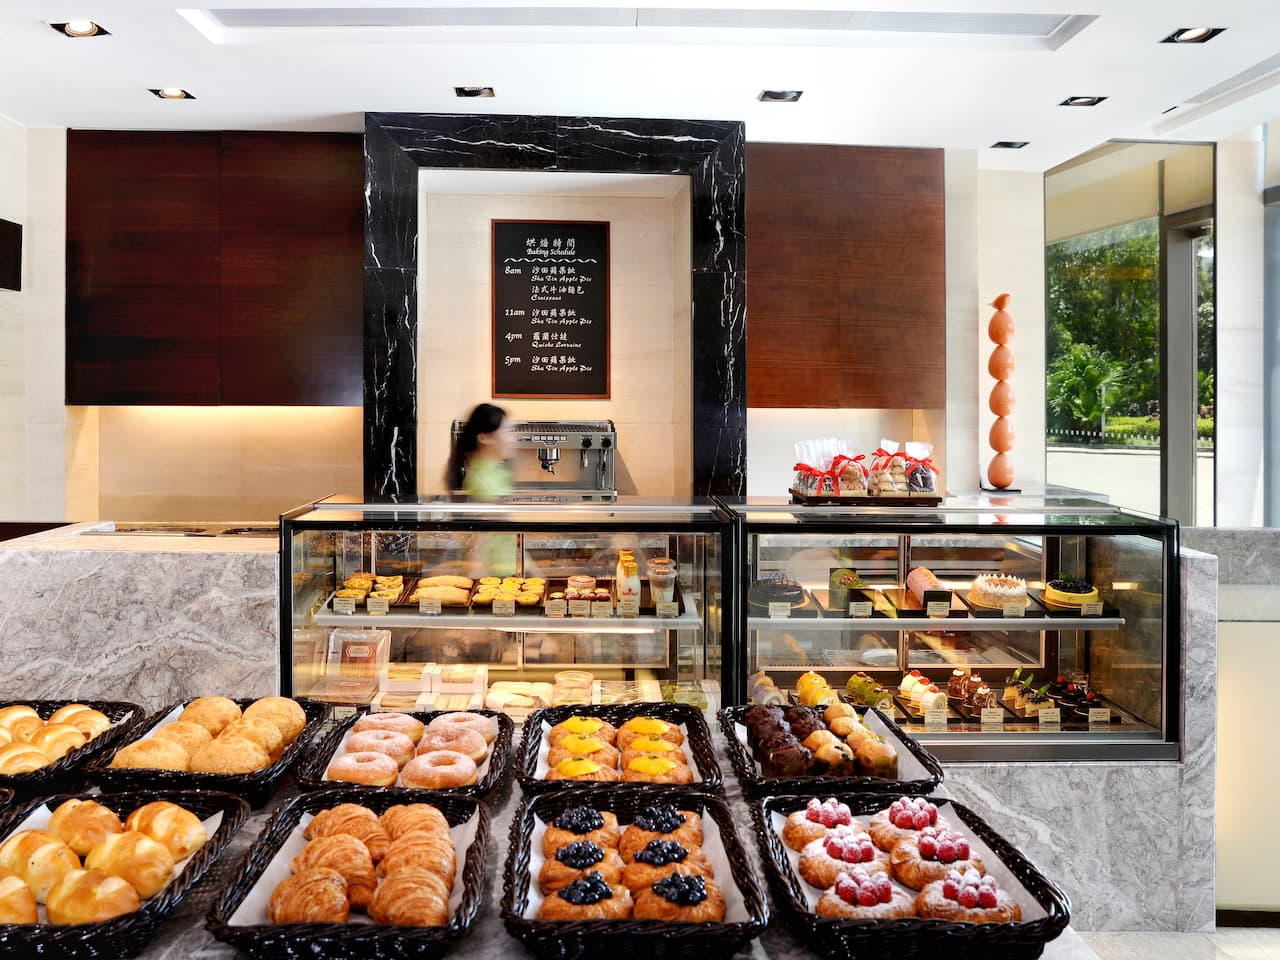 Sha Tin Patisserie